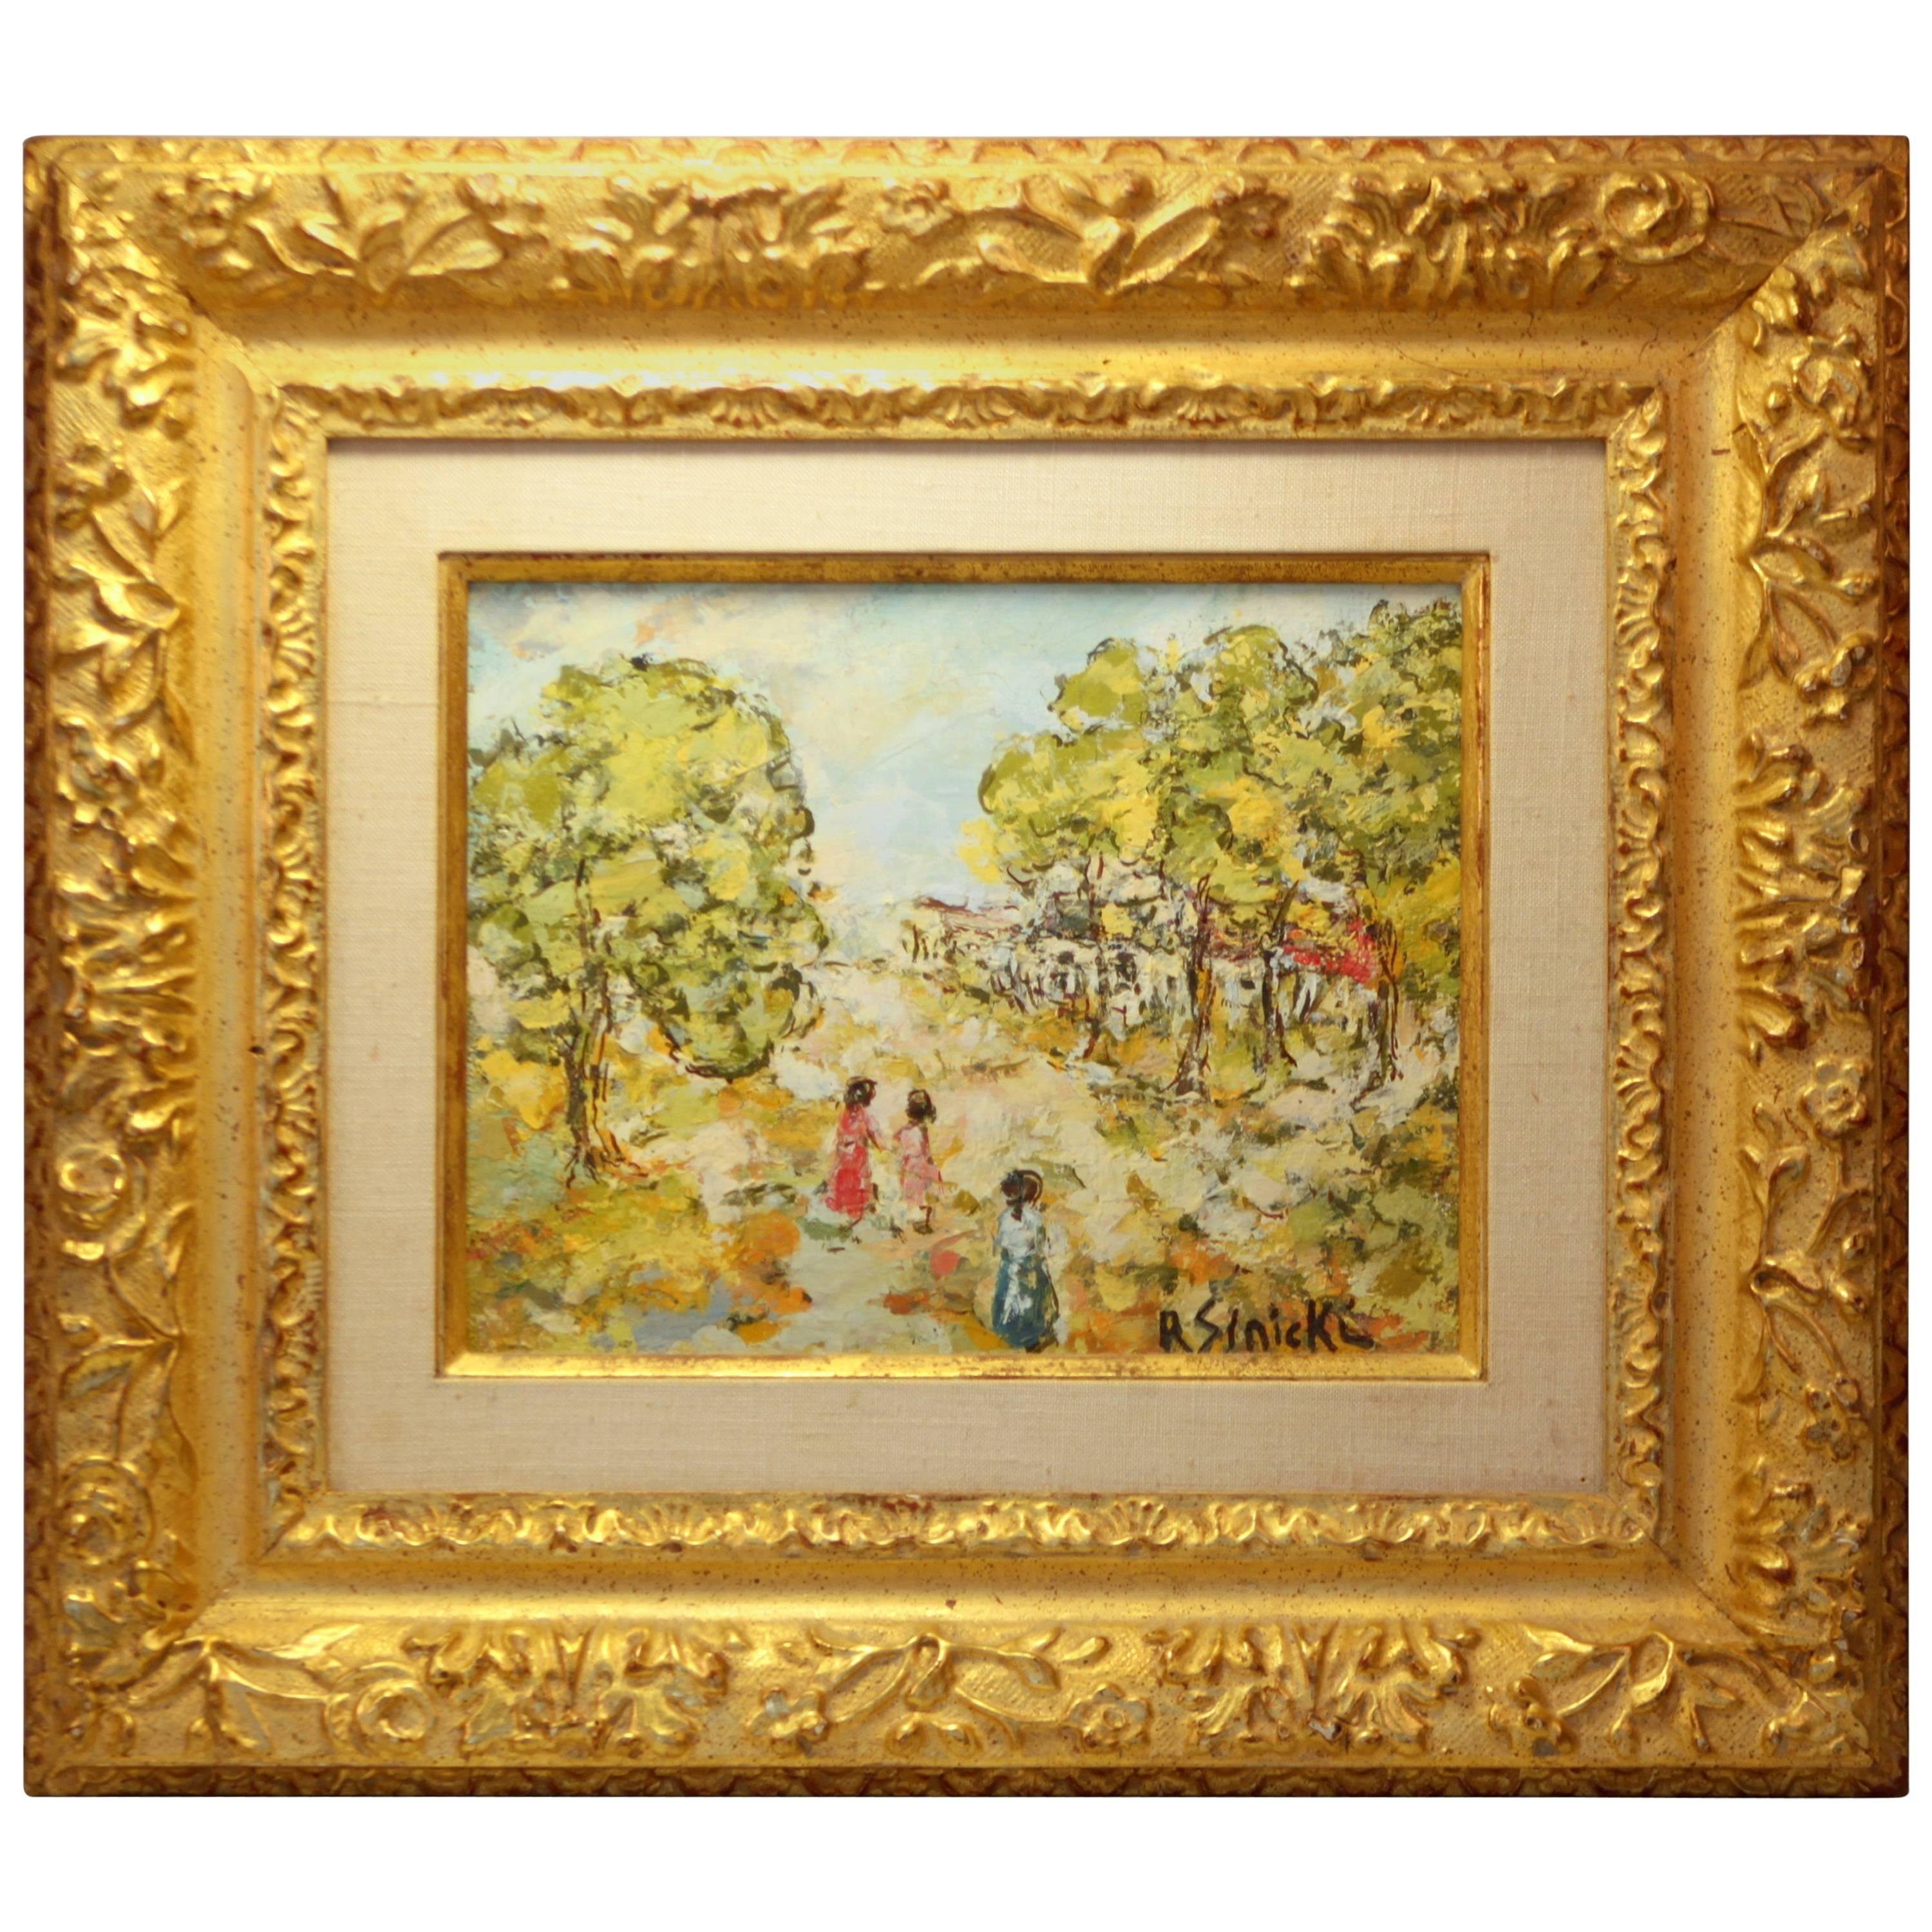 Oil on Board French / Russian Painting Signed by René Sinicki, circa 1970